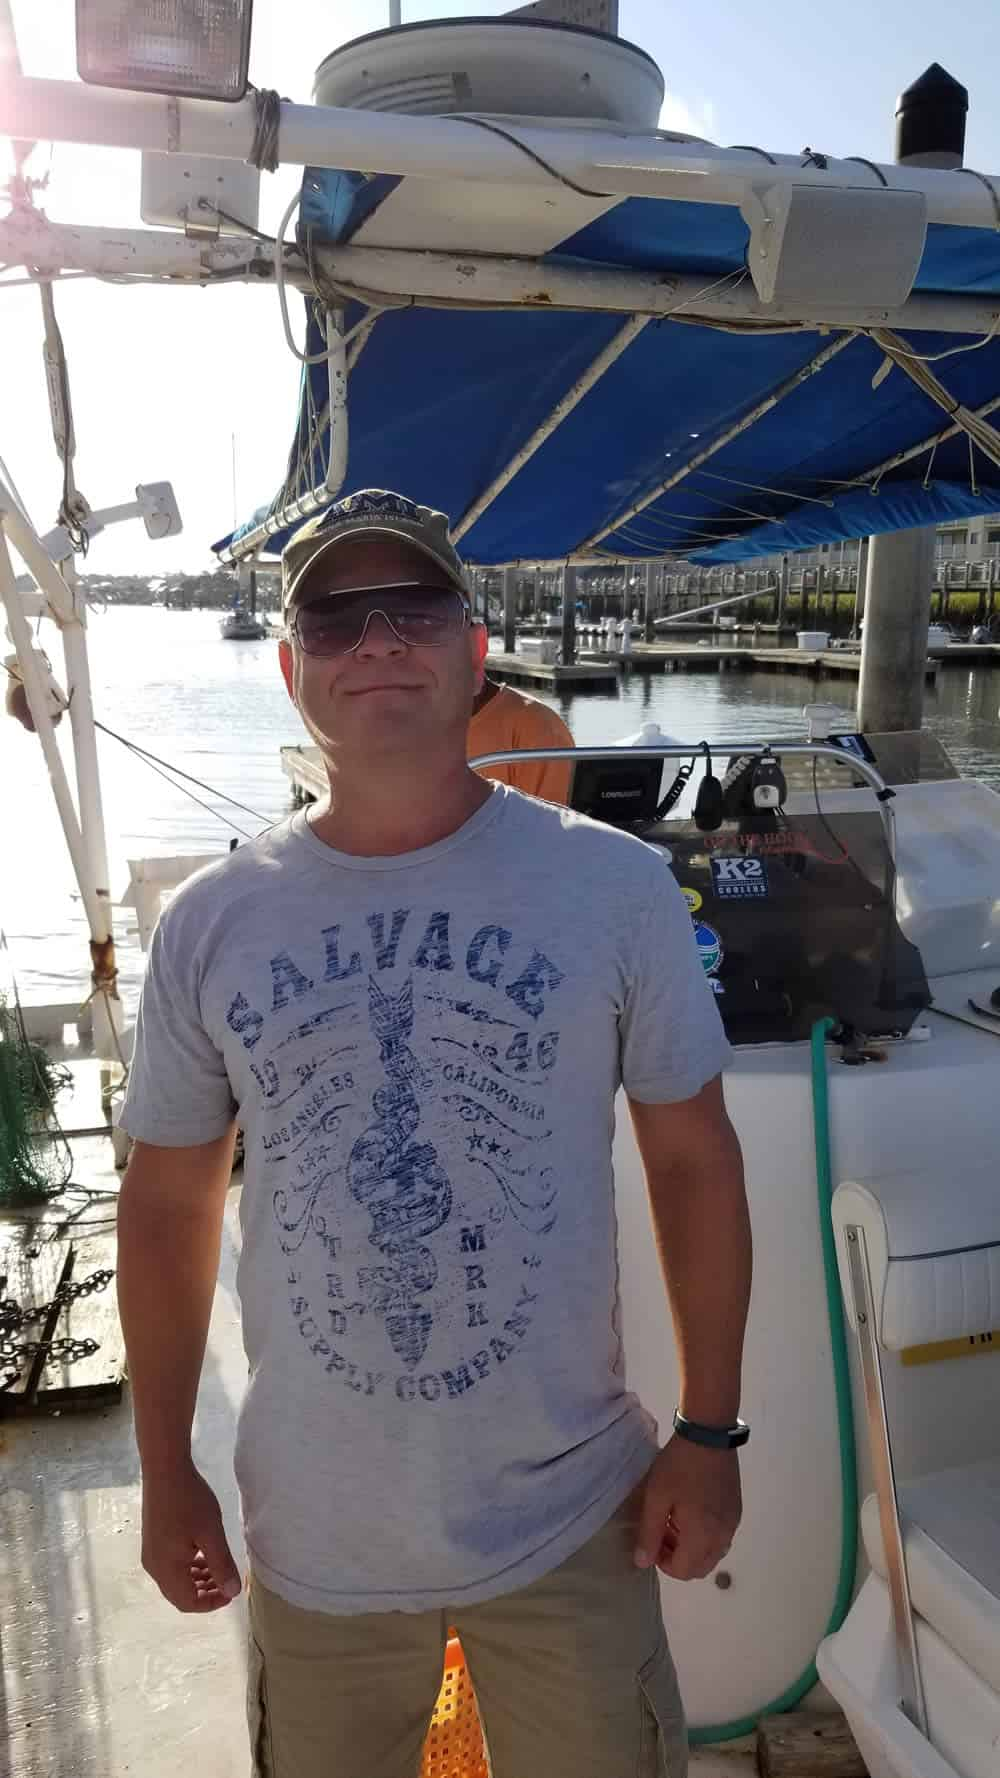 Mike Hultquist on the Shrimp Boat